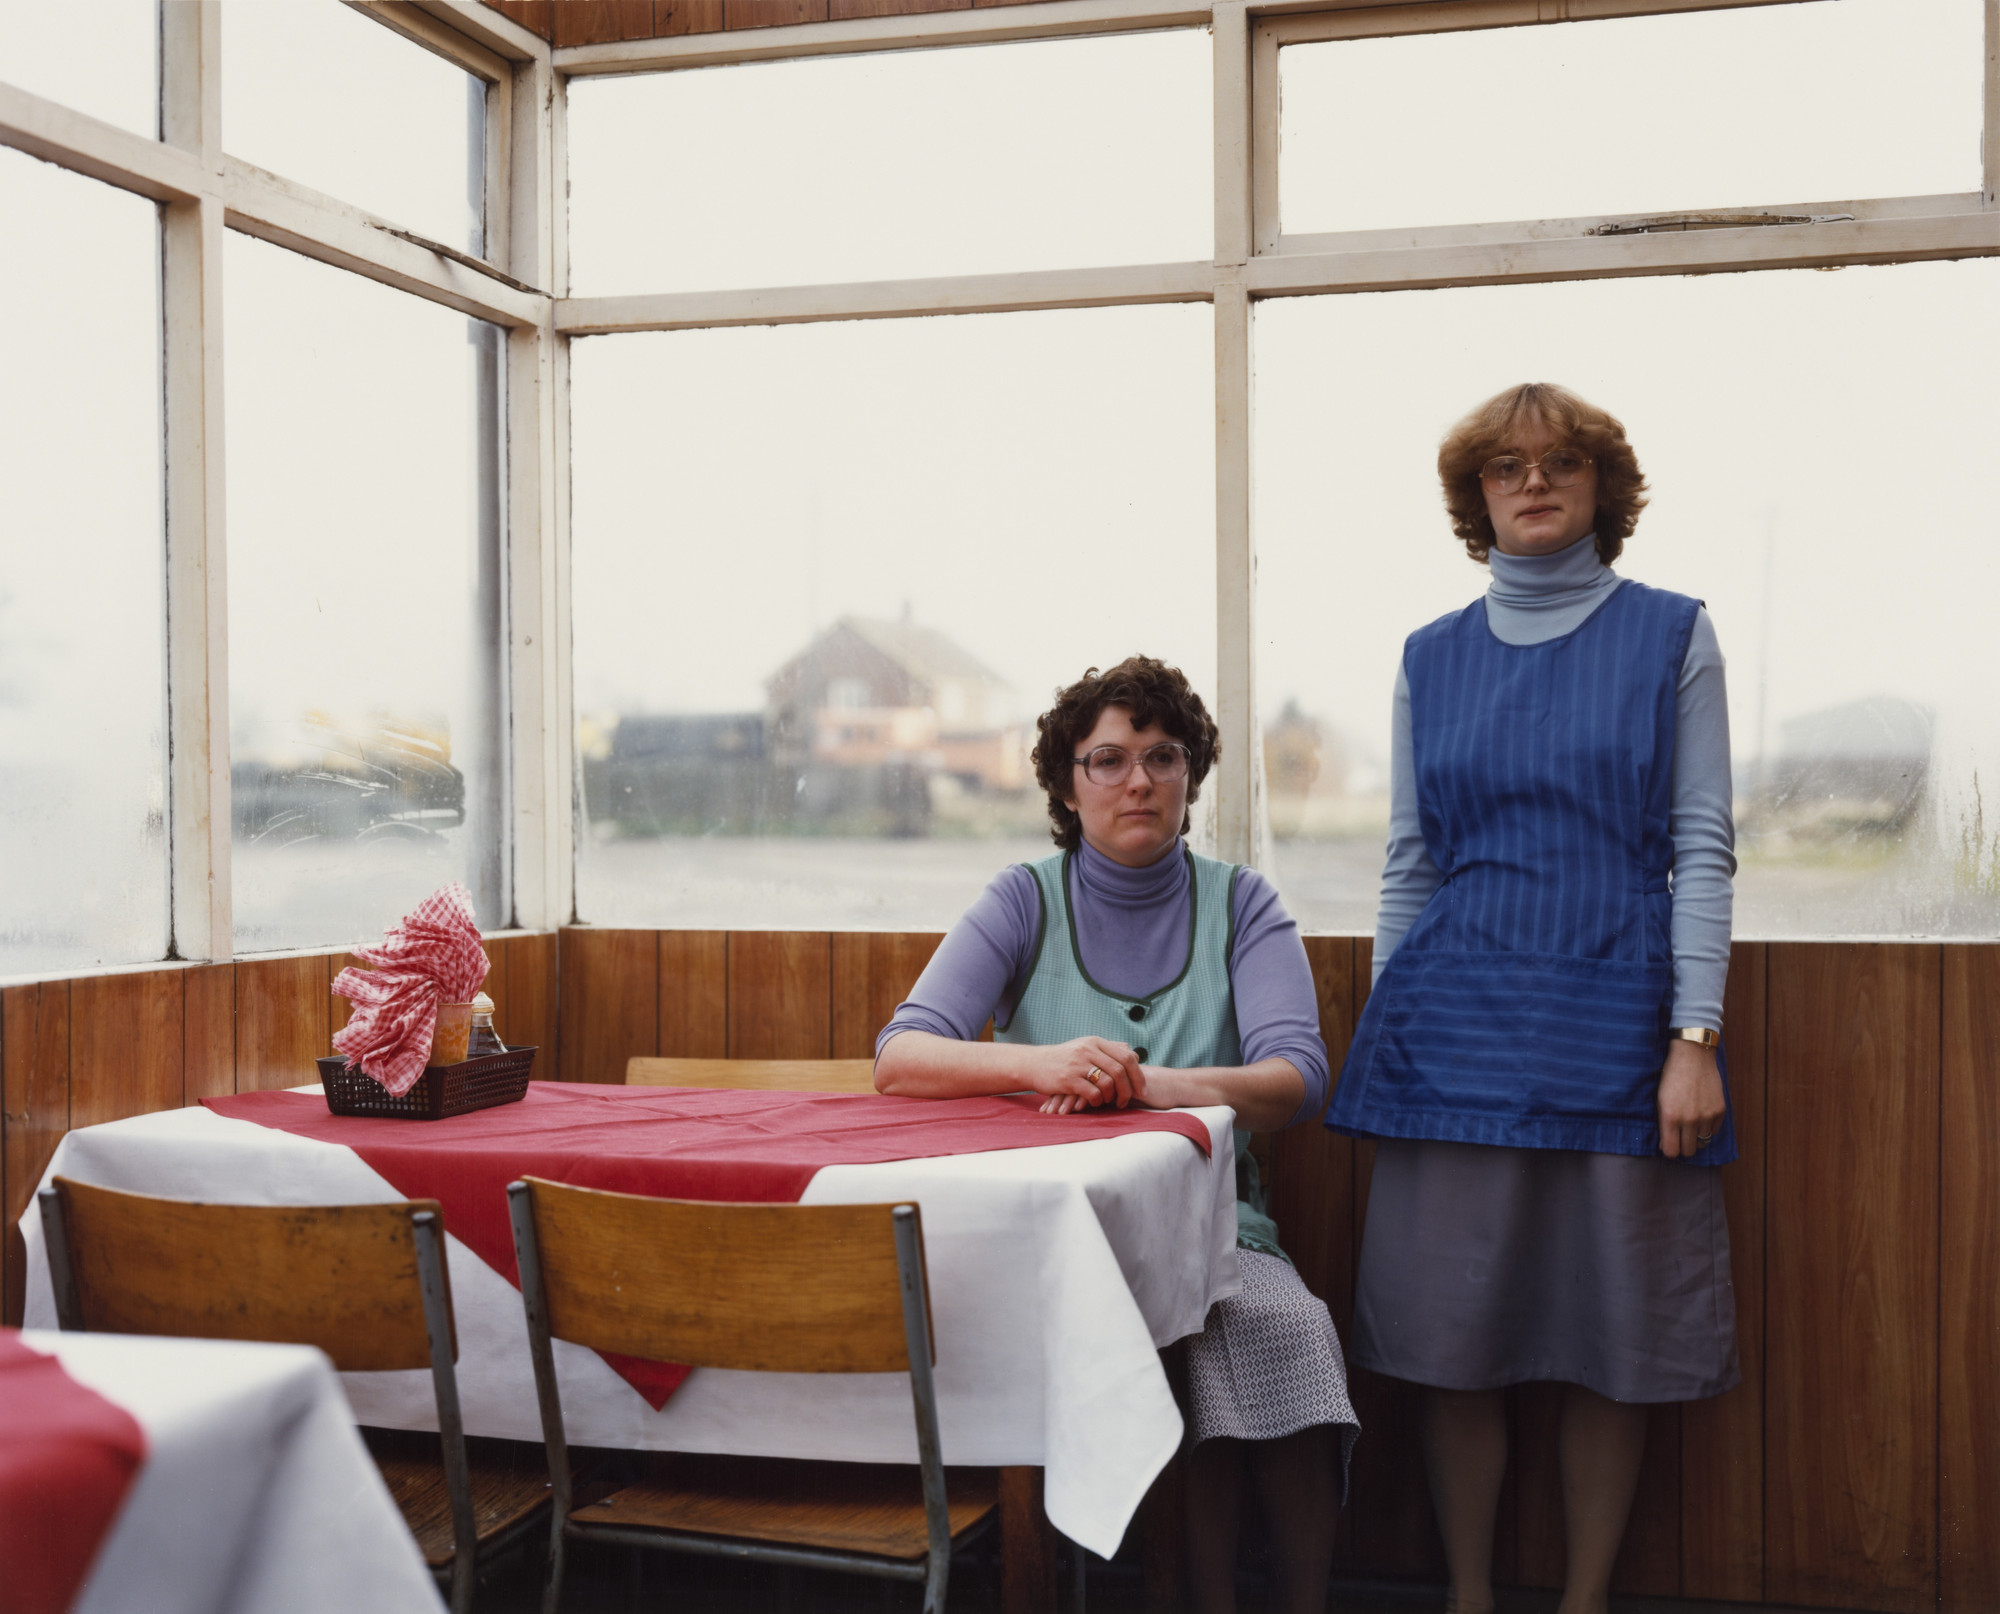 Paul Graham. Cafe Assistants, Compass Cafe, Colsterworth, Lincolnshire from the portfolio A1: The Great North Road. November 1982